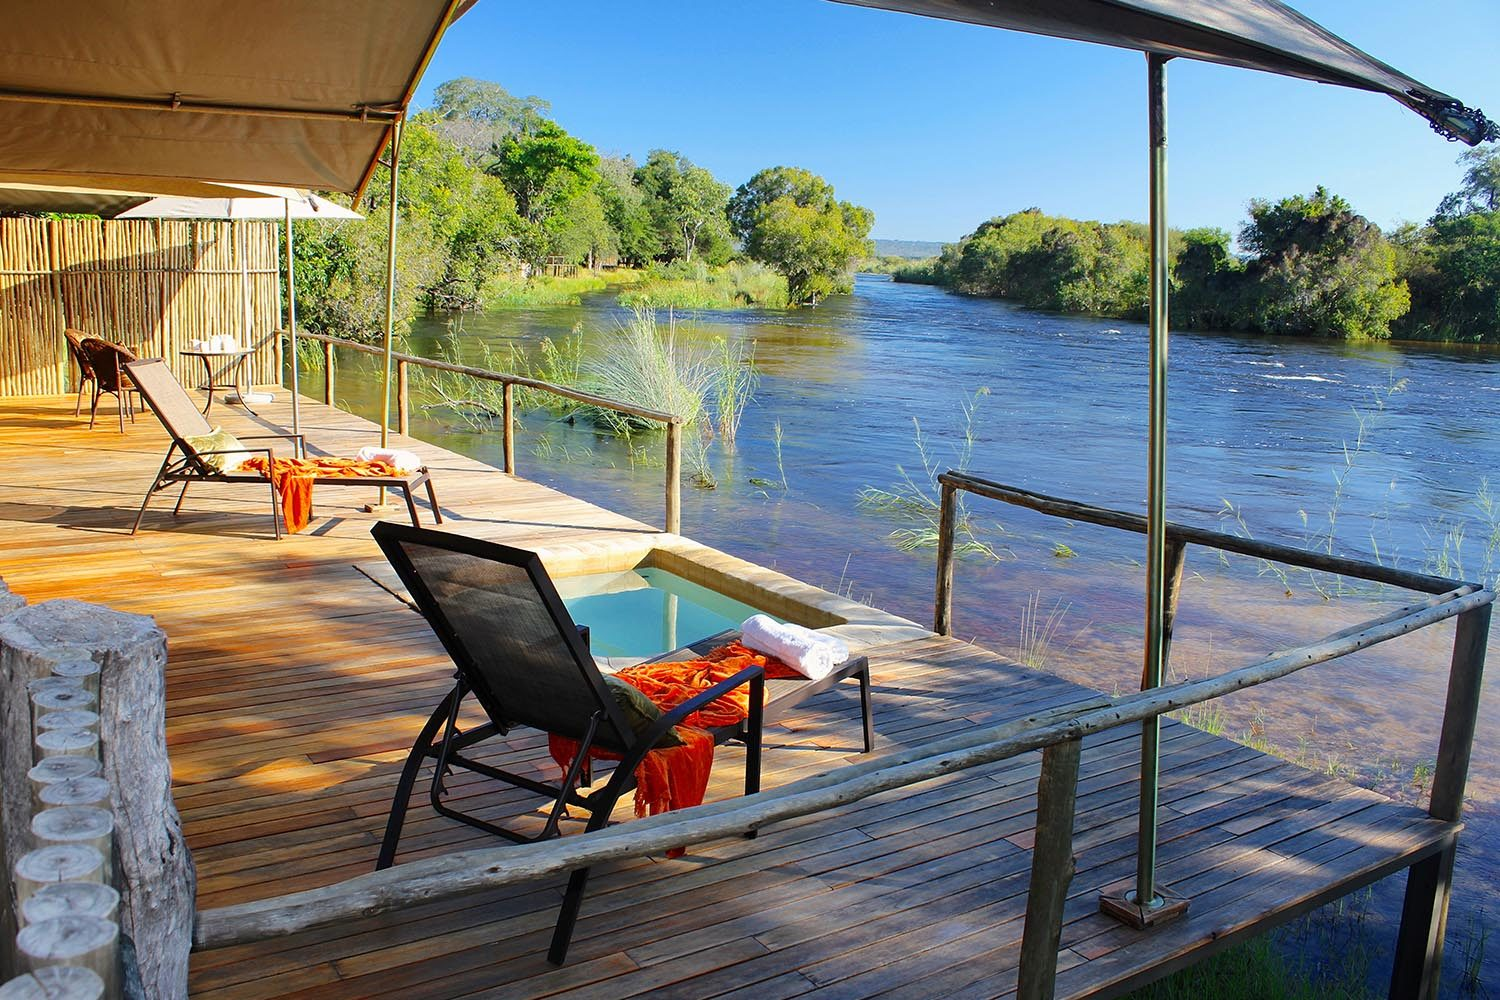 zambezi sands river camp-victoria-falls-zimbabwe-accommodation-imvelo-safari-lodges-zambezi-national-park-private-plunge-pool-deck